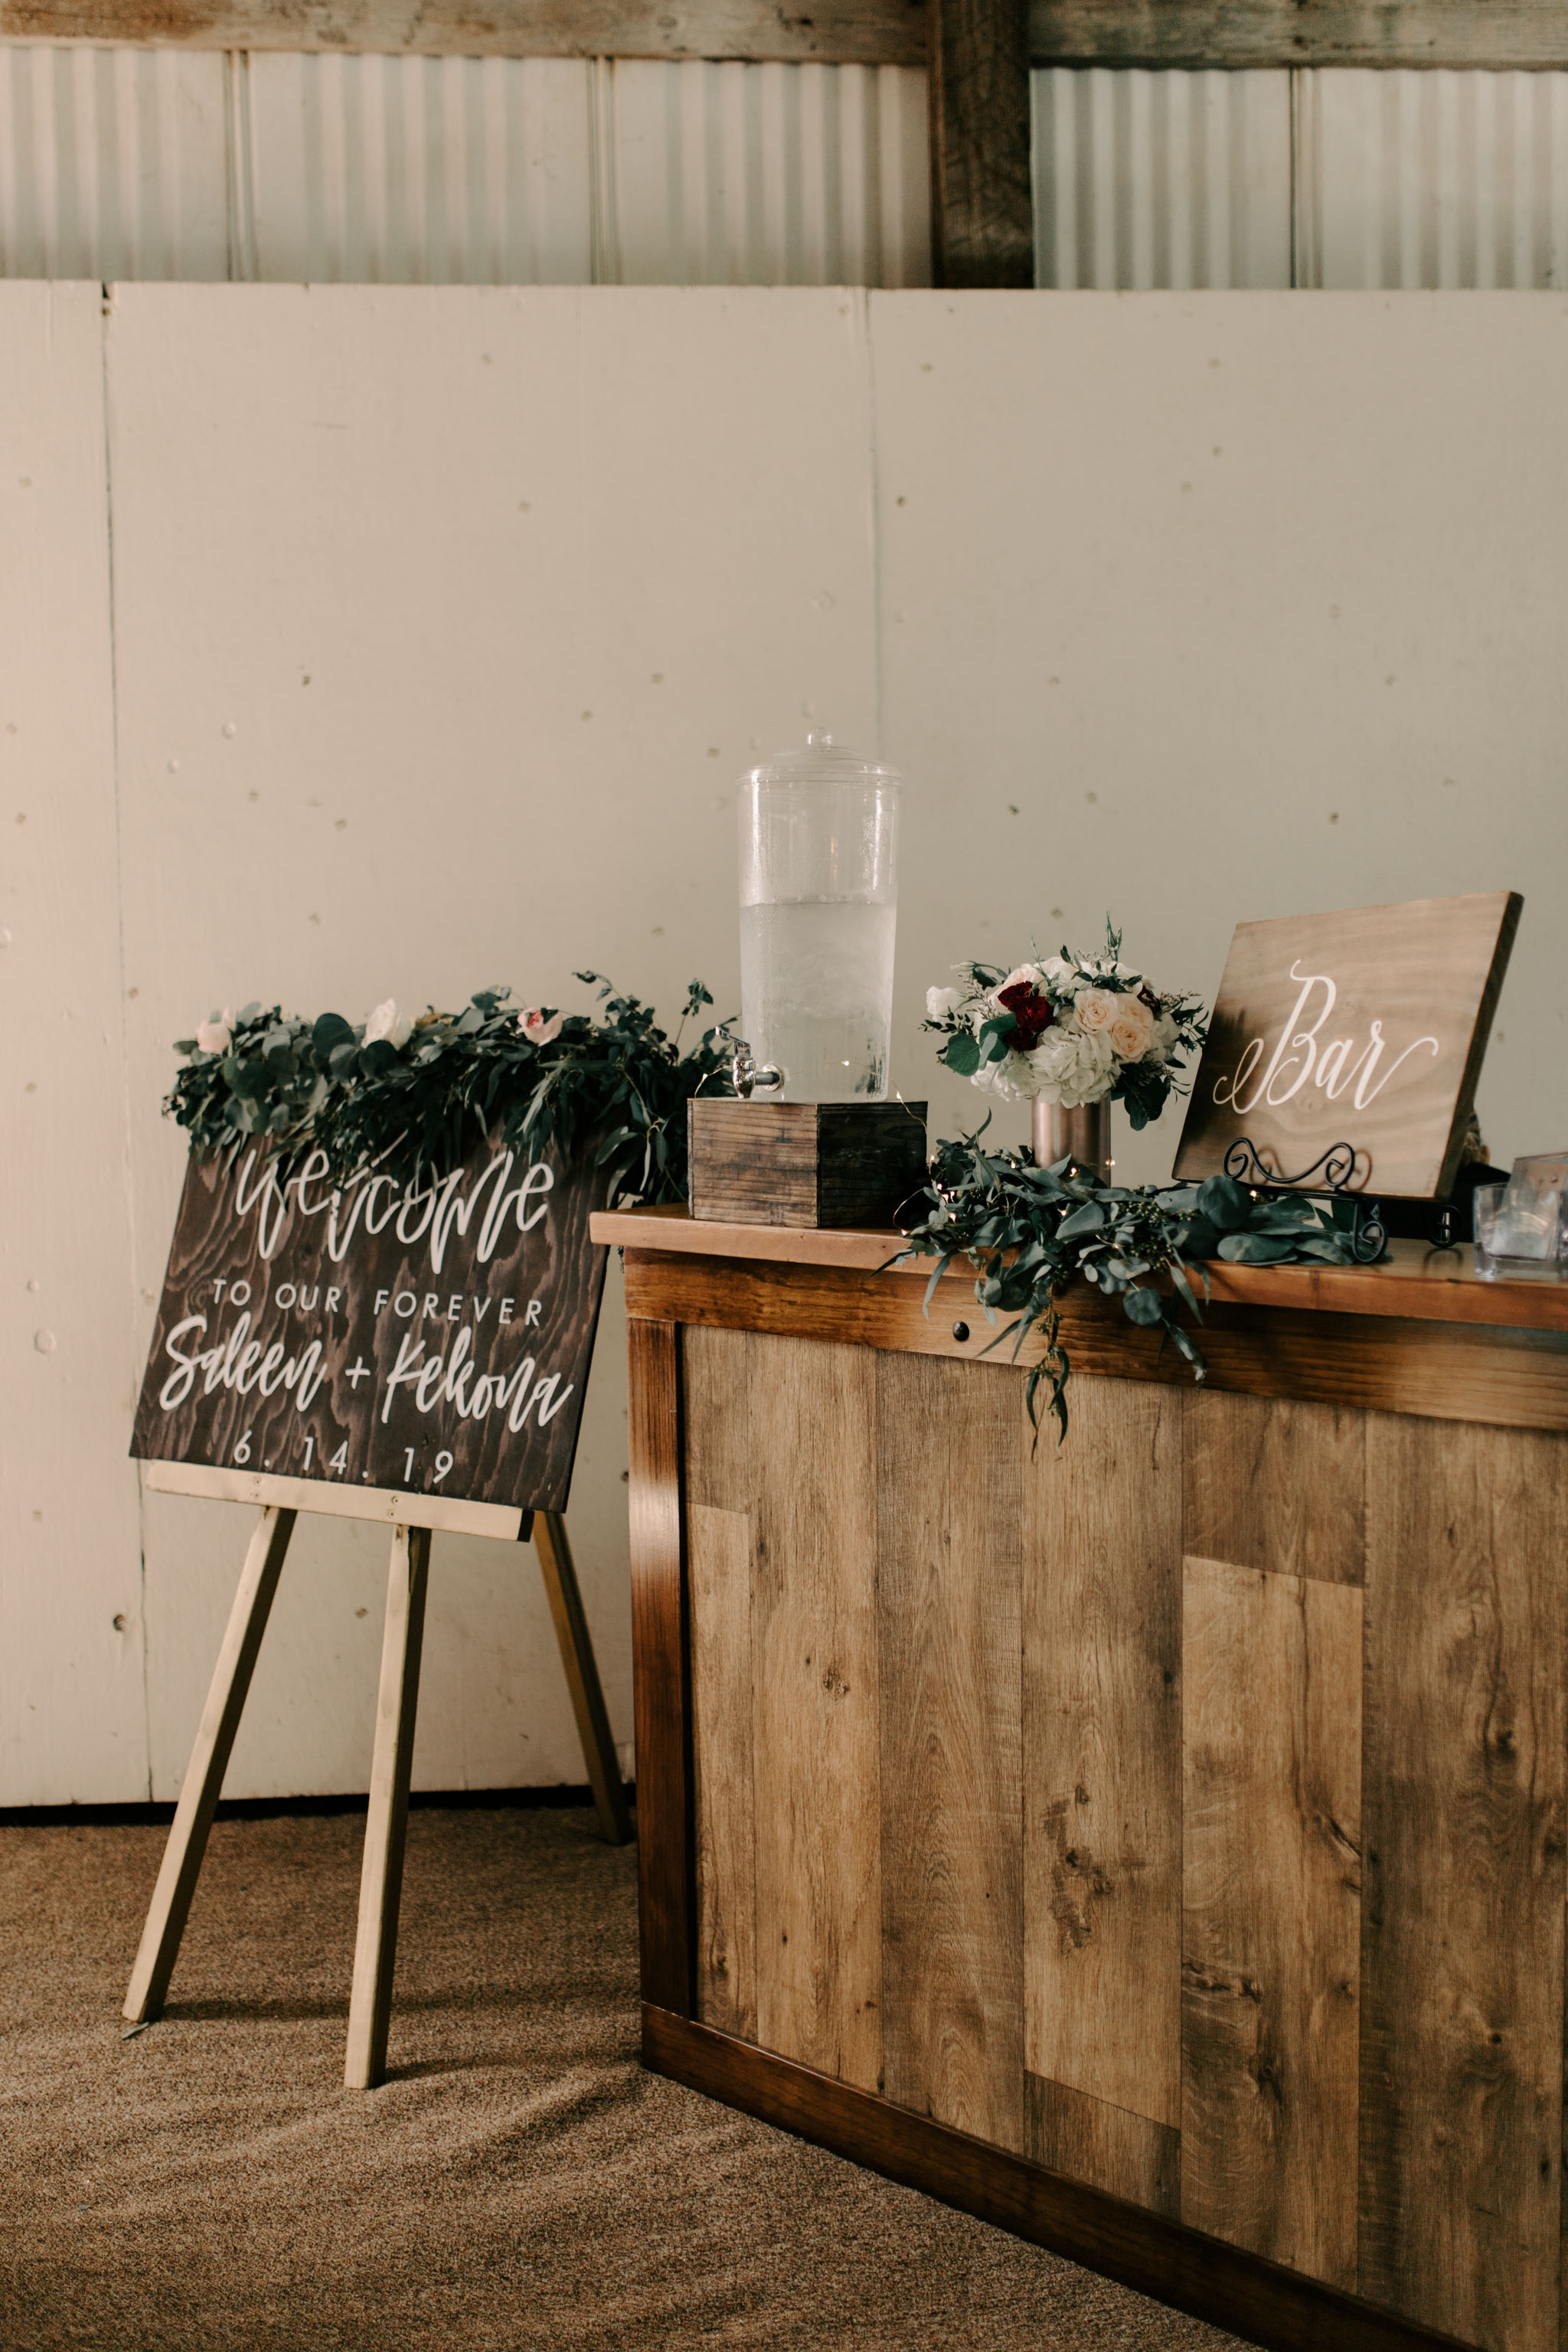 Hawaii Barn Wedding Reception Bar Setup Idea- Sunset Ranch Hawaii Wedding By Oahu Wedding Photographer Desiree Leilani